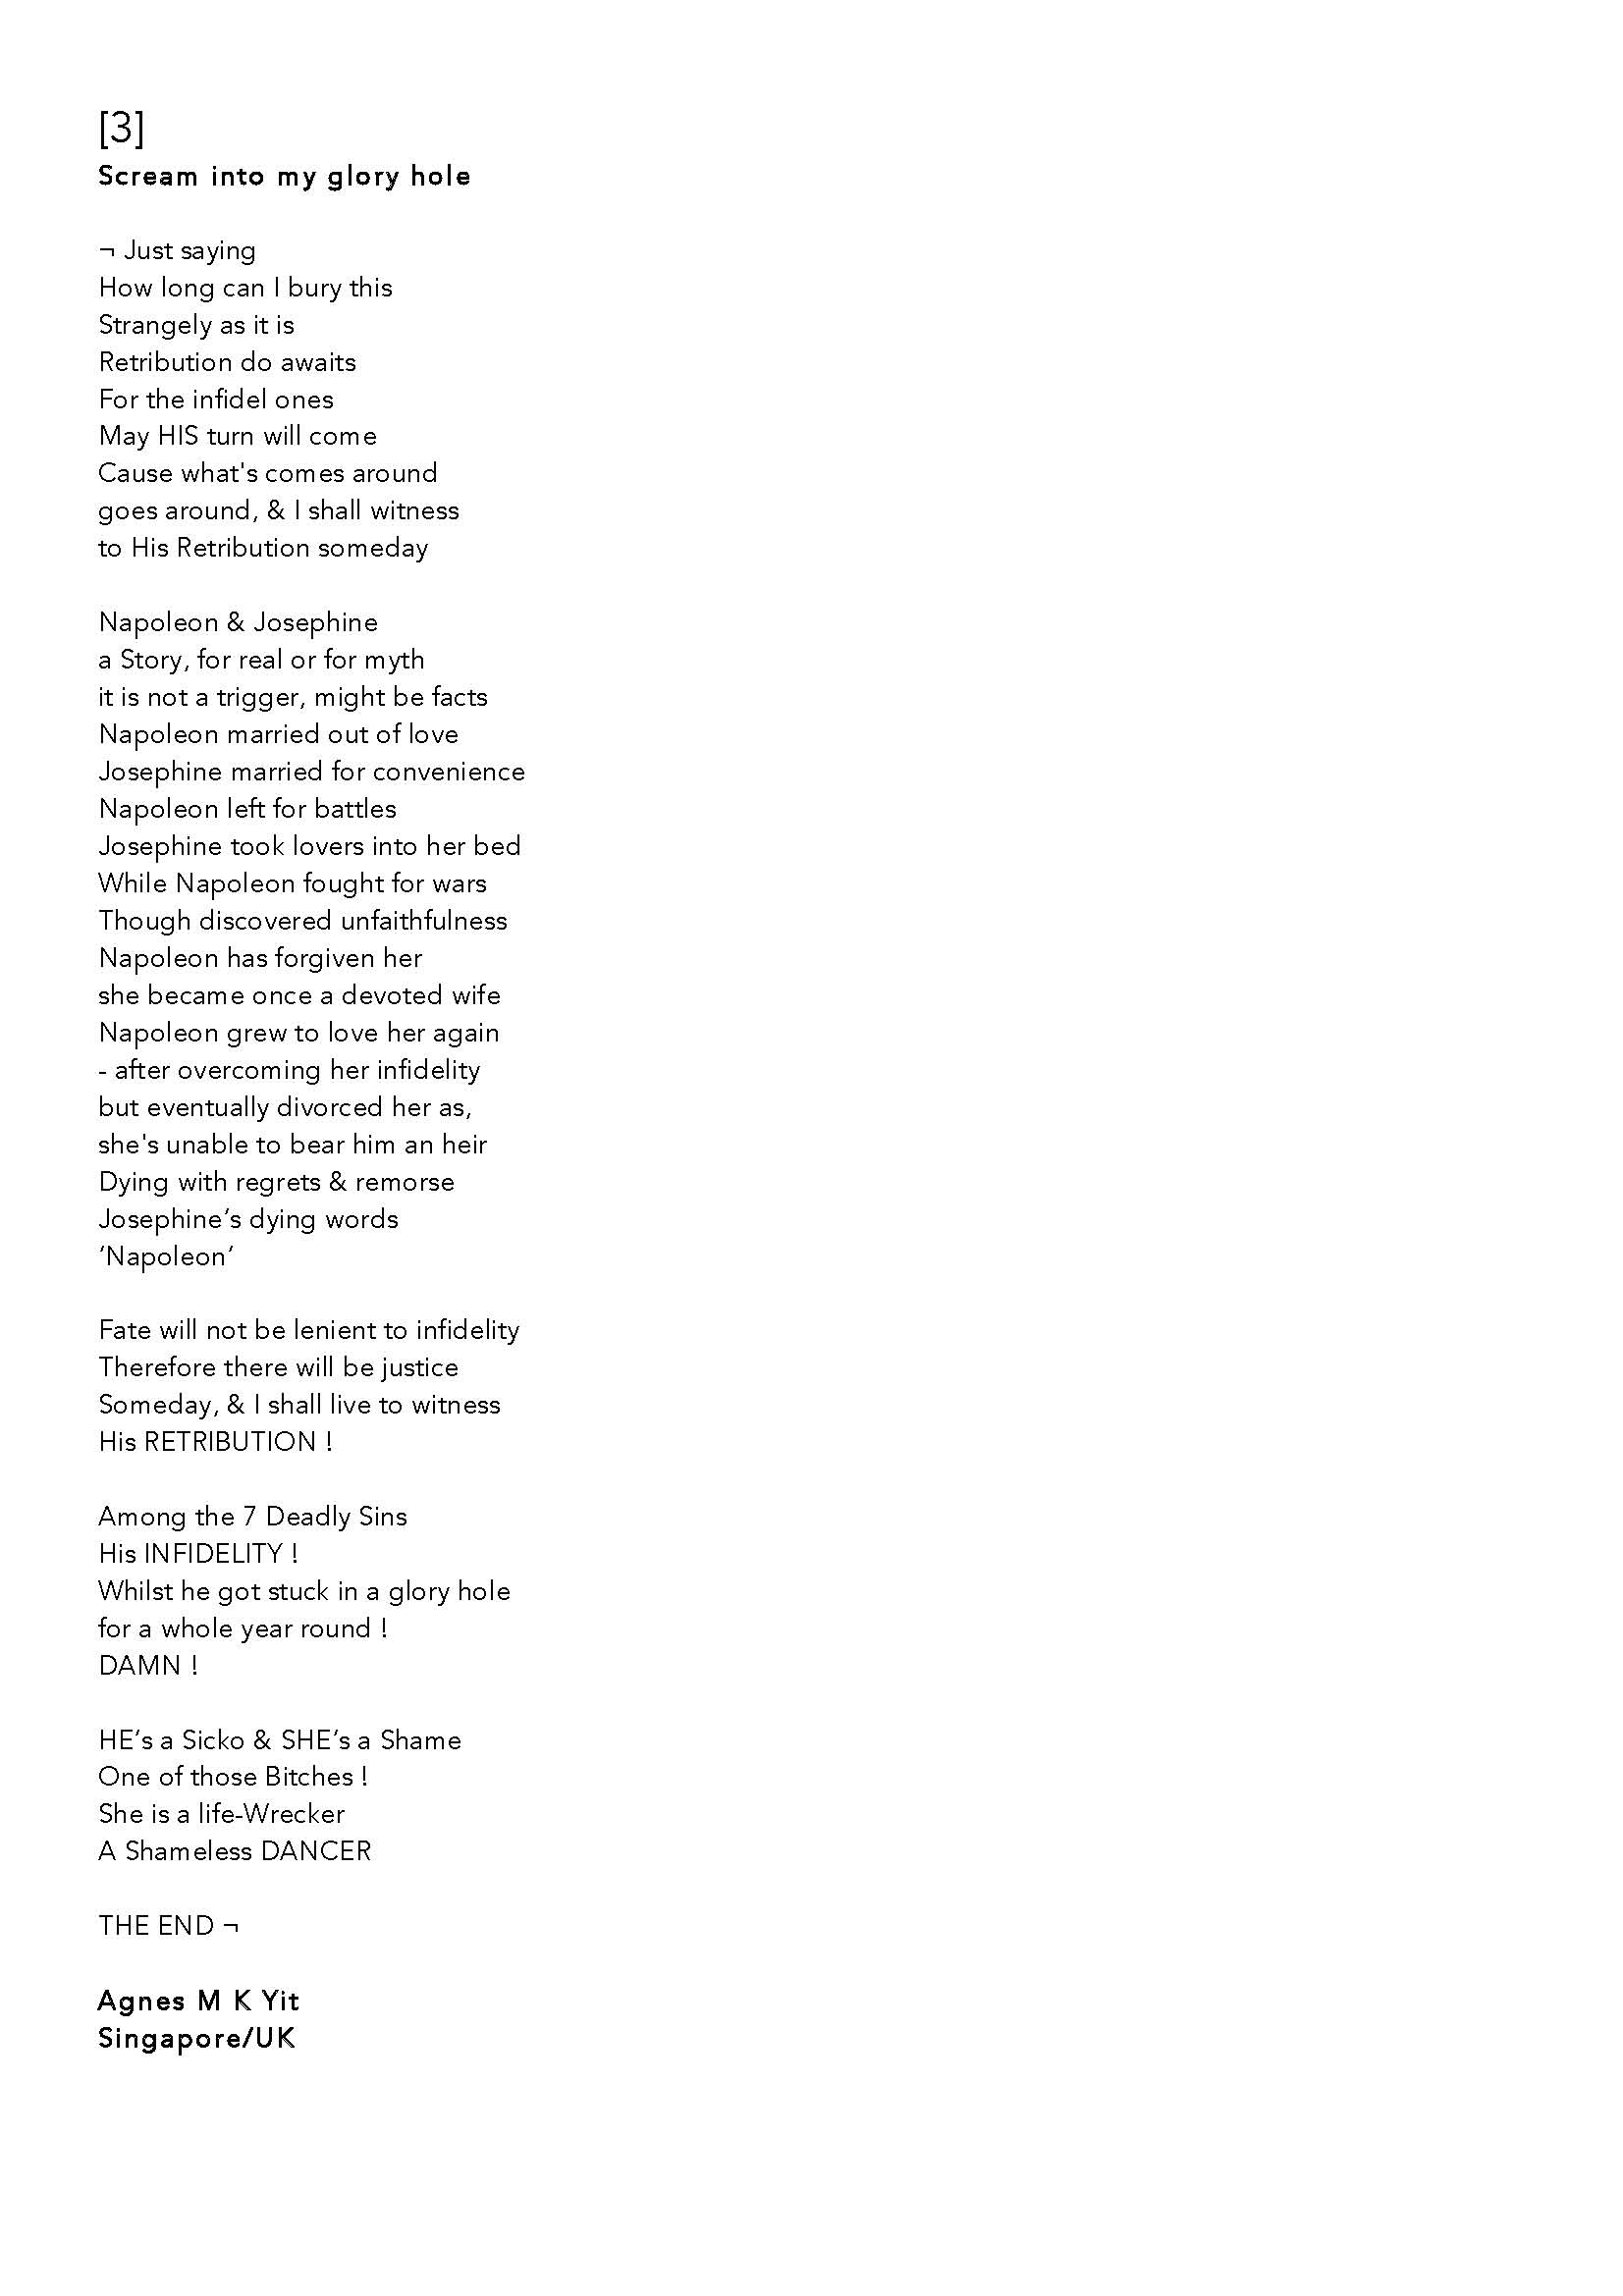 Poetry Collection - Everyone can Poetry _ For 12 May 2014 - R2_Page_03.jpg